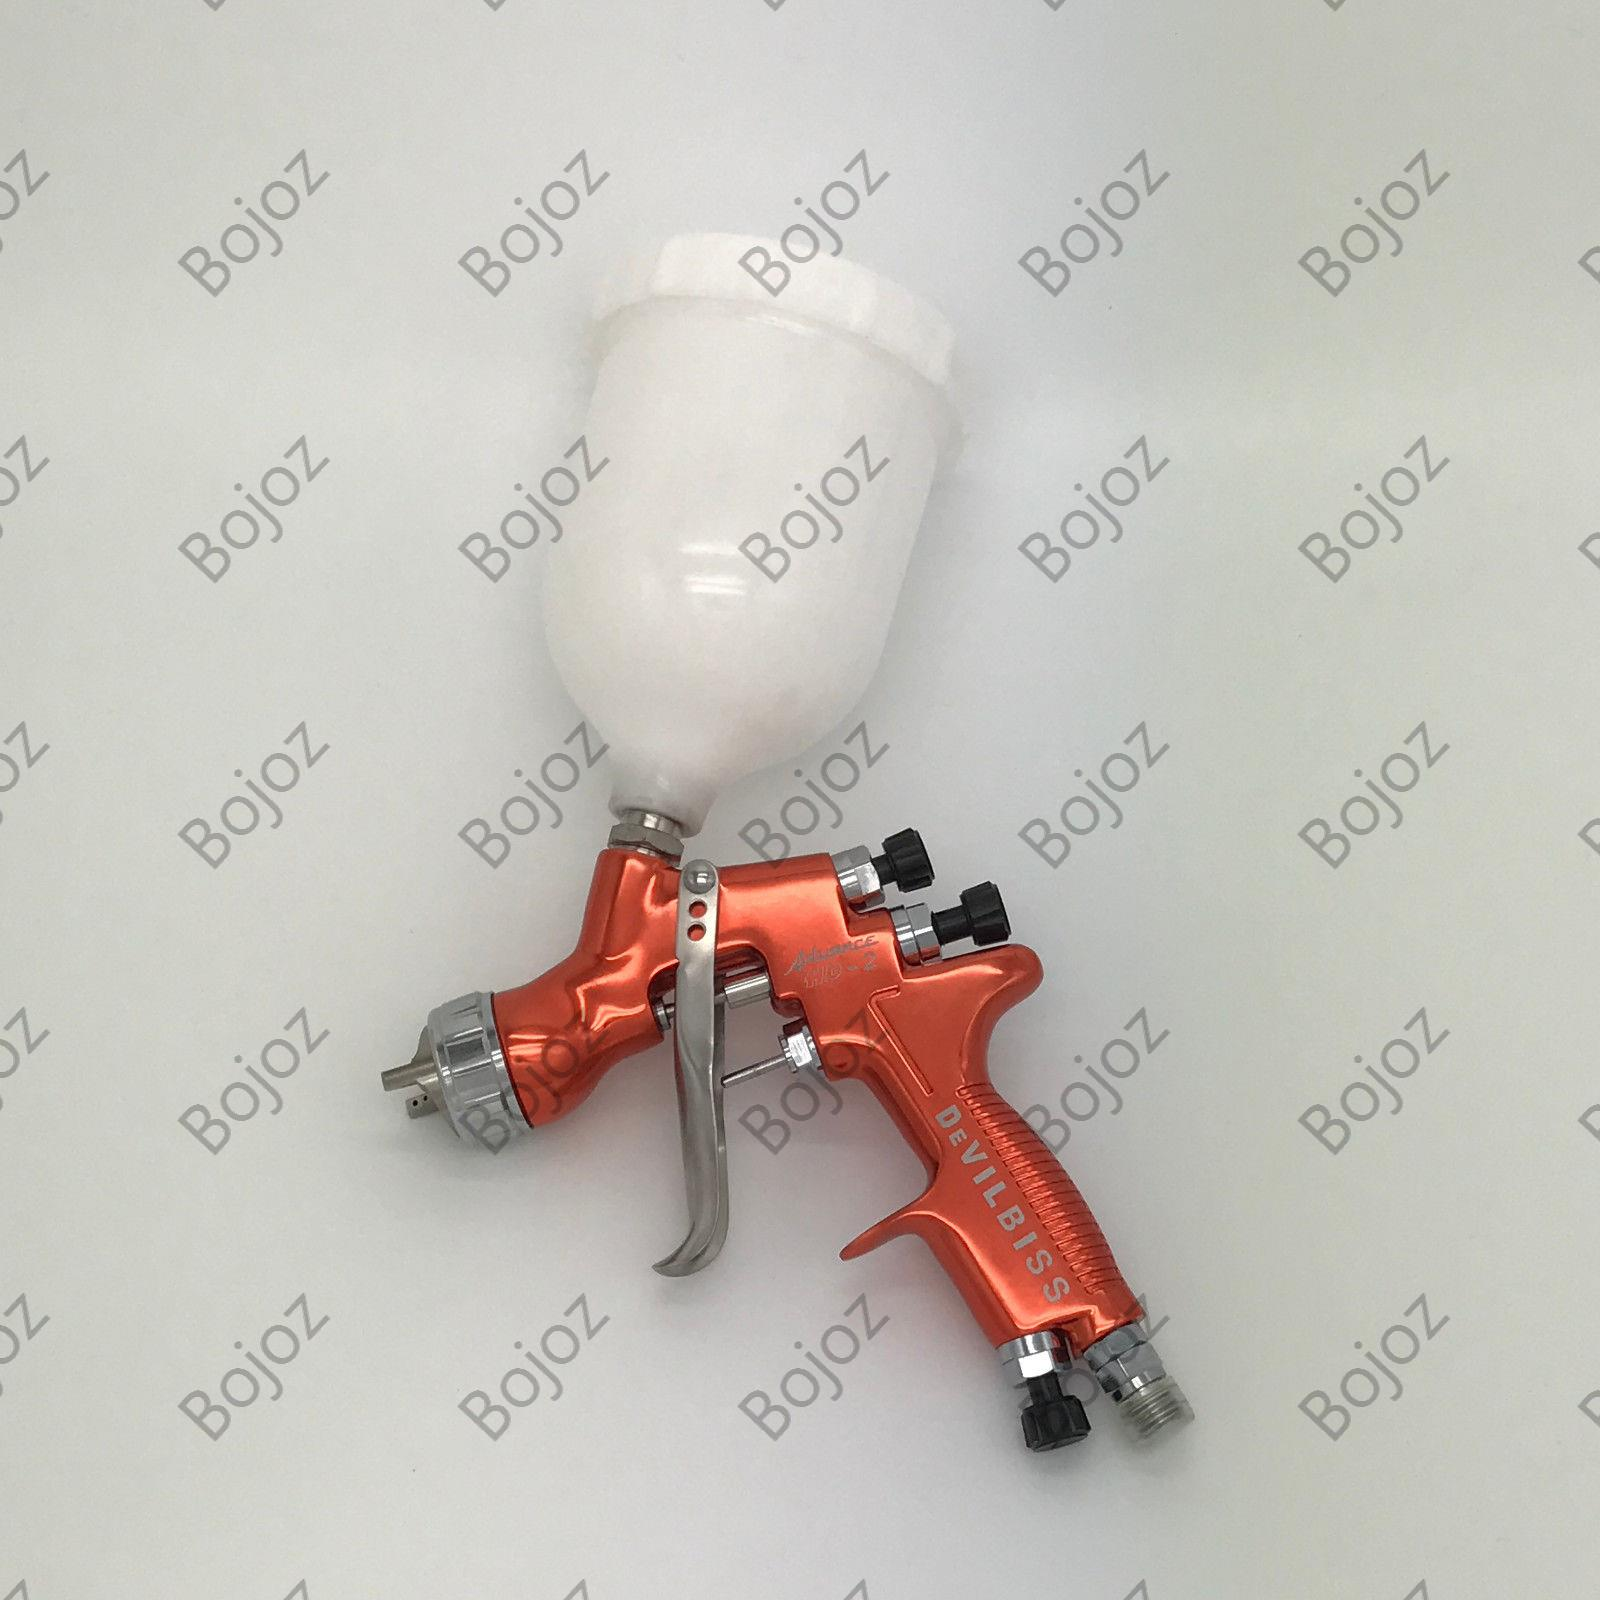 Free shipping New Devilbiss HD-2 HVLP Spray Gun Gravity feed 1.3mm Topcoat Touch-Up Paint Cup for all Auto Paint  W/T 600ml CUP hvlp devilbiss spray gun gravity feed for all auto paint topcoat and touch up with 600cc plastic paint cup